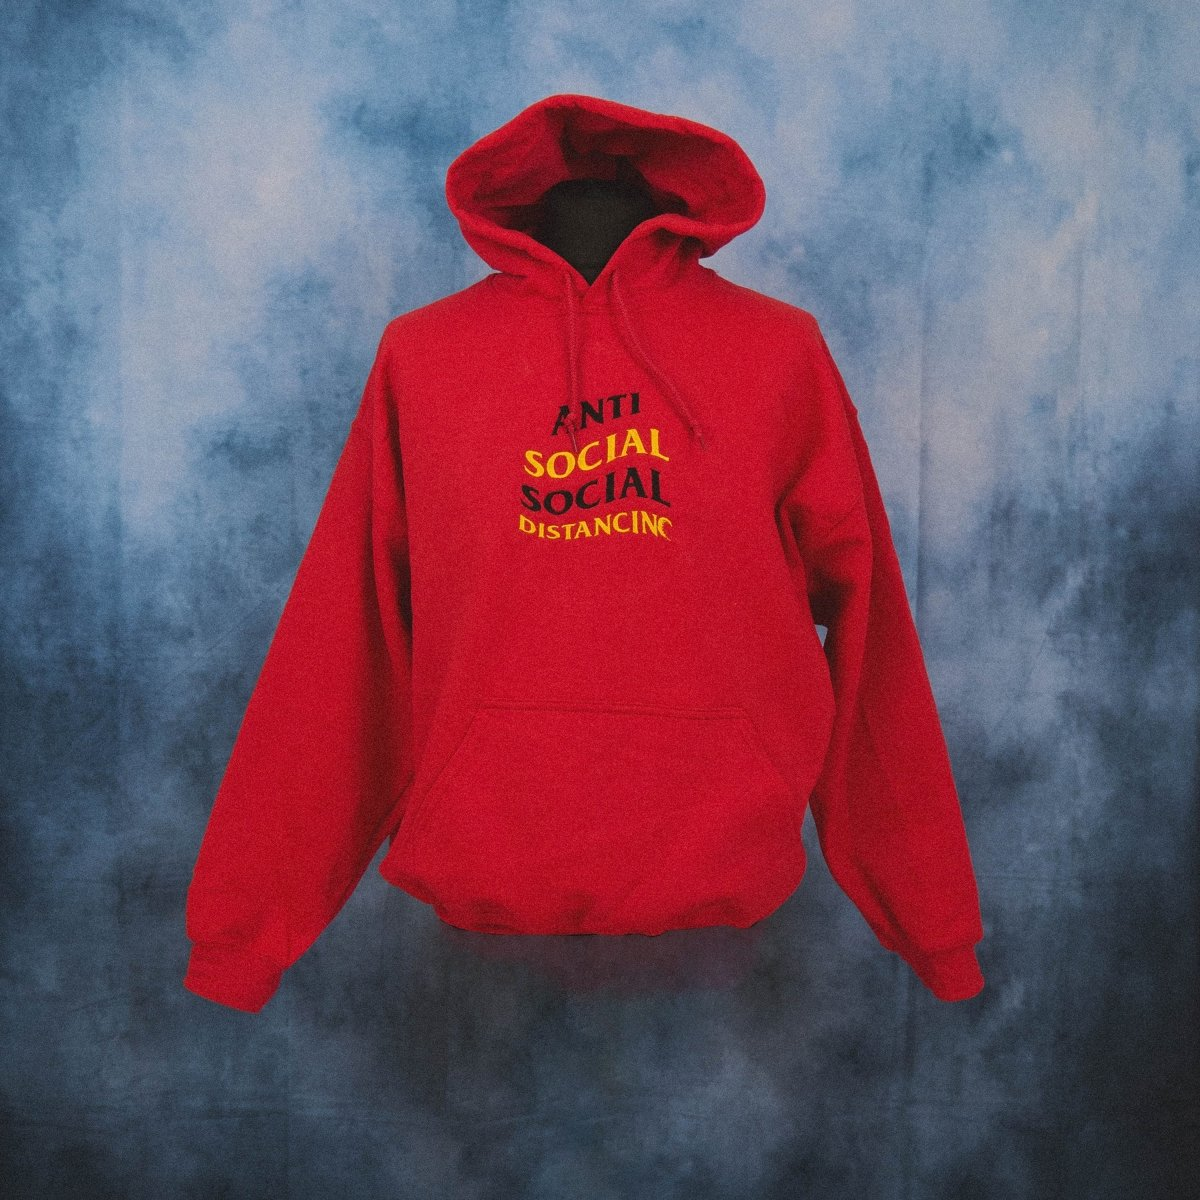 'Anti Social Social Distancing' Red Unisex Embroidered Hoodie